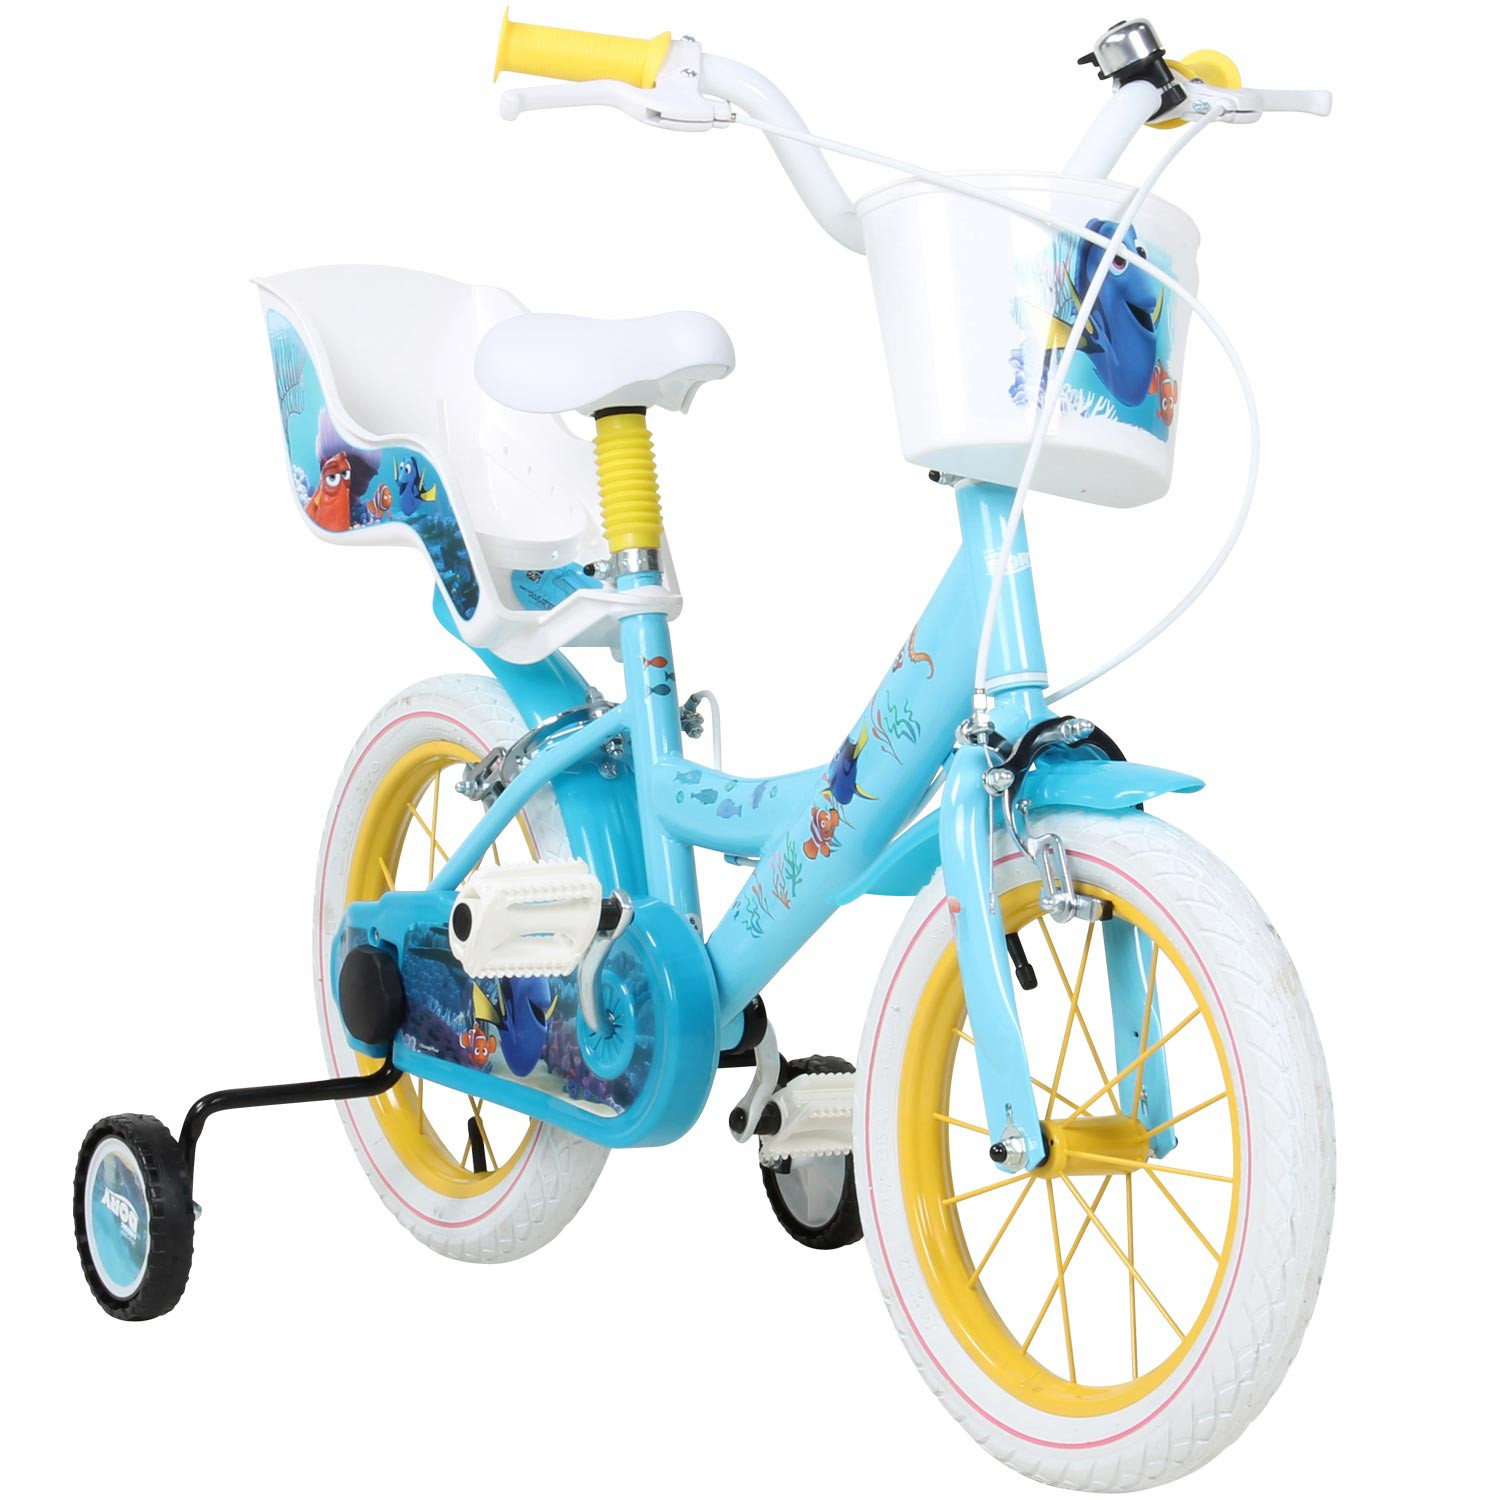 findet nemo 2 findet dorie 14 zoll kinderfahrrad fahrrad. Black Bedroom Furniture Sets. Home Design Ideas